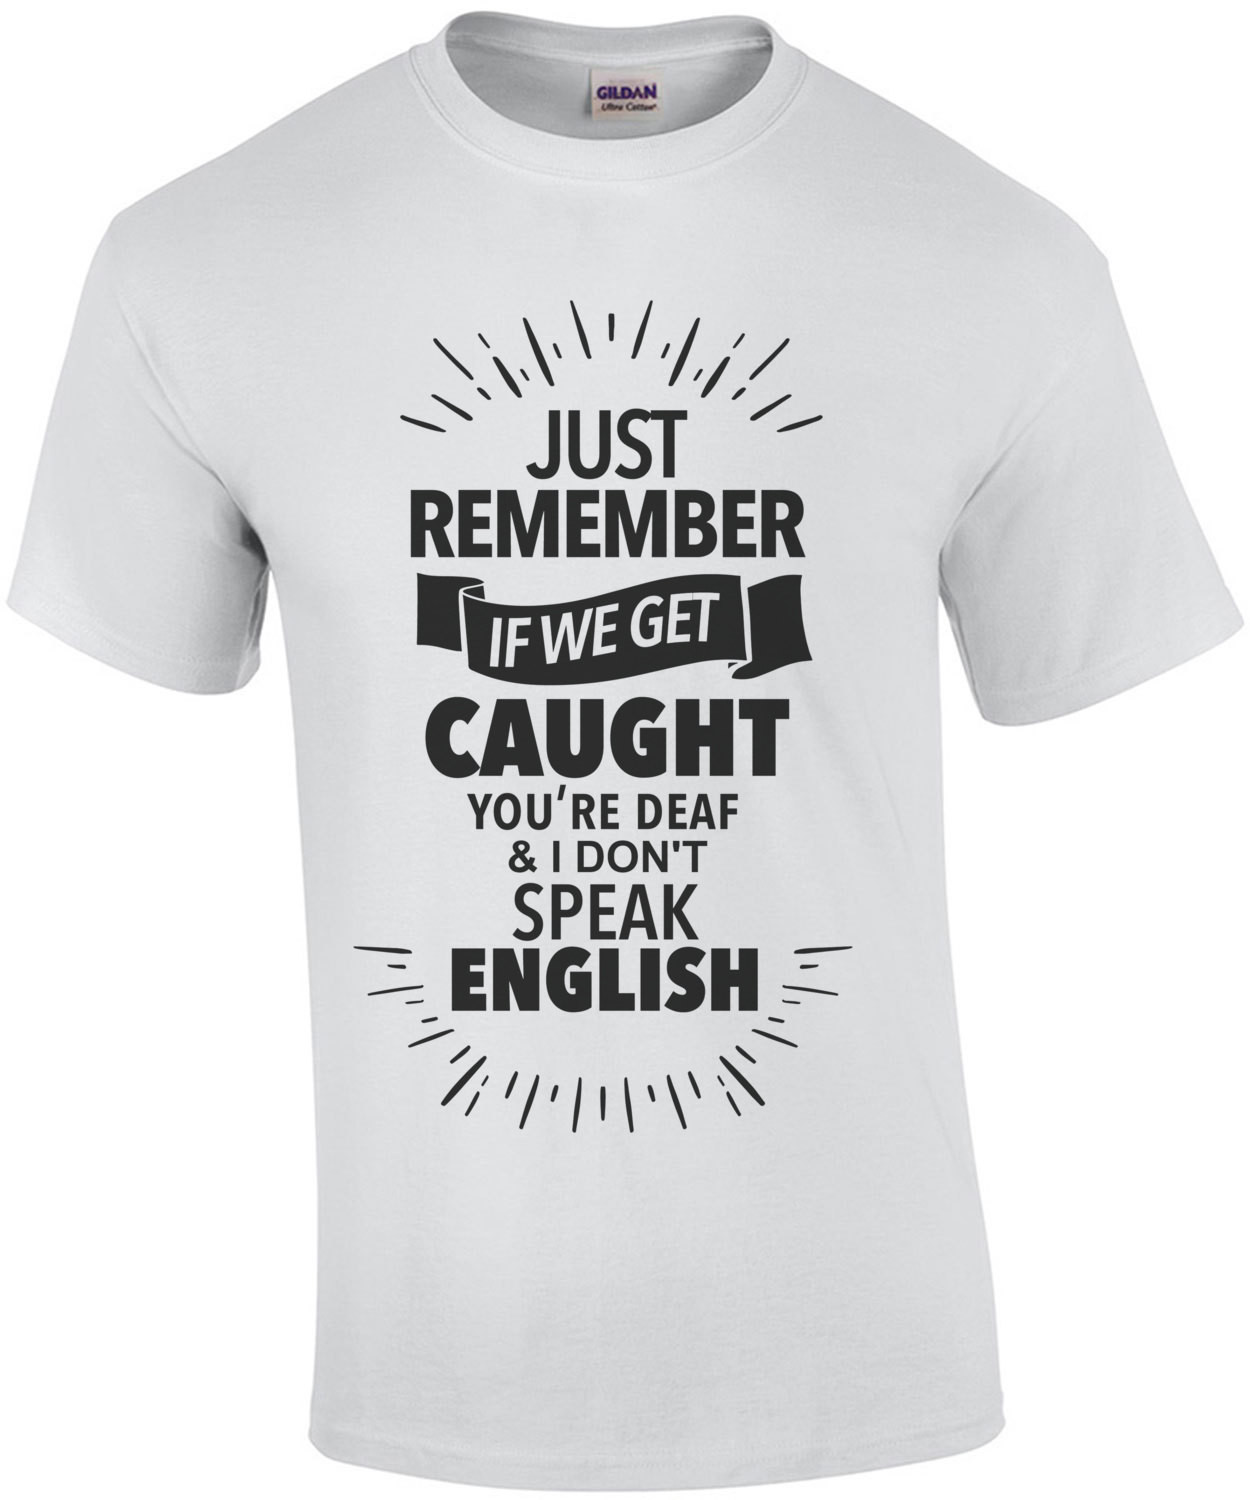 Just remember if we get caught you're deaf and I don't speak English - funny t-shirt